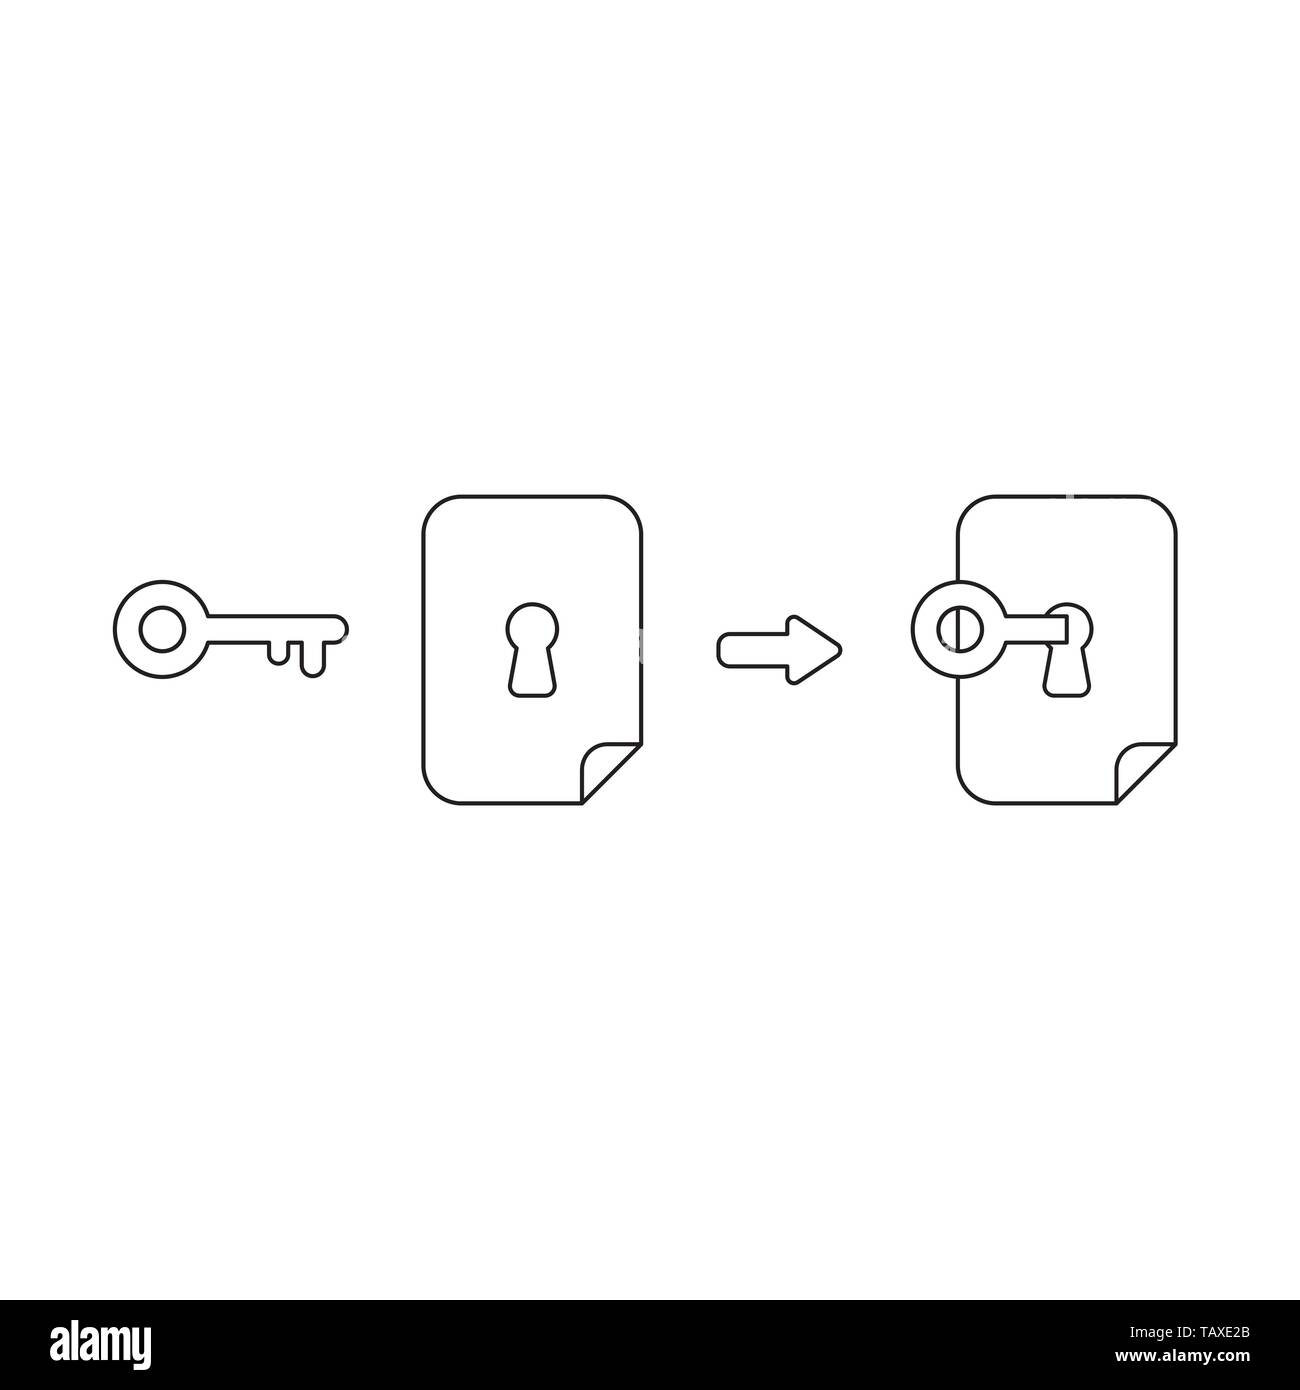 Vector icon concept of key unlock, lock paper keyhole. Black outlines. - Stock Image